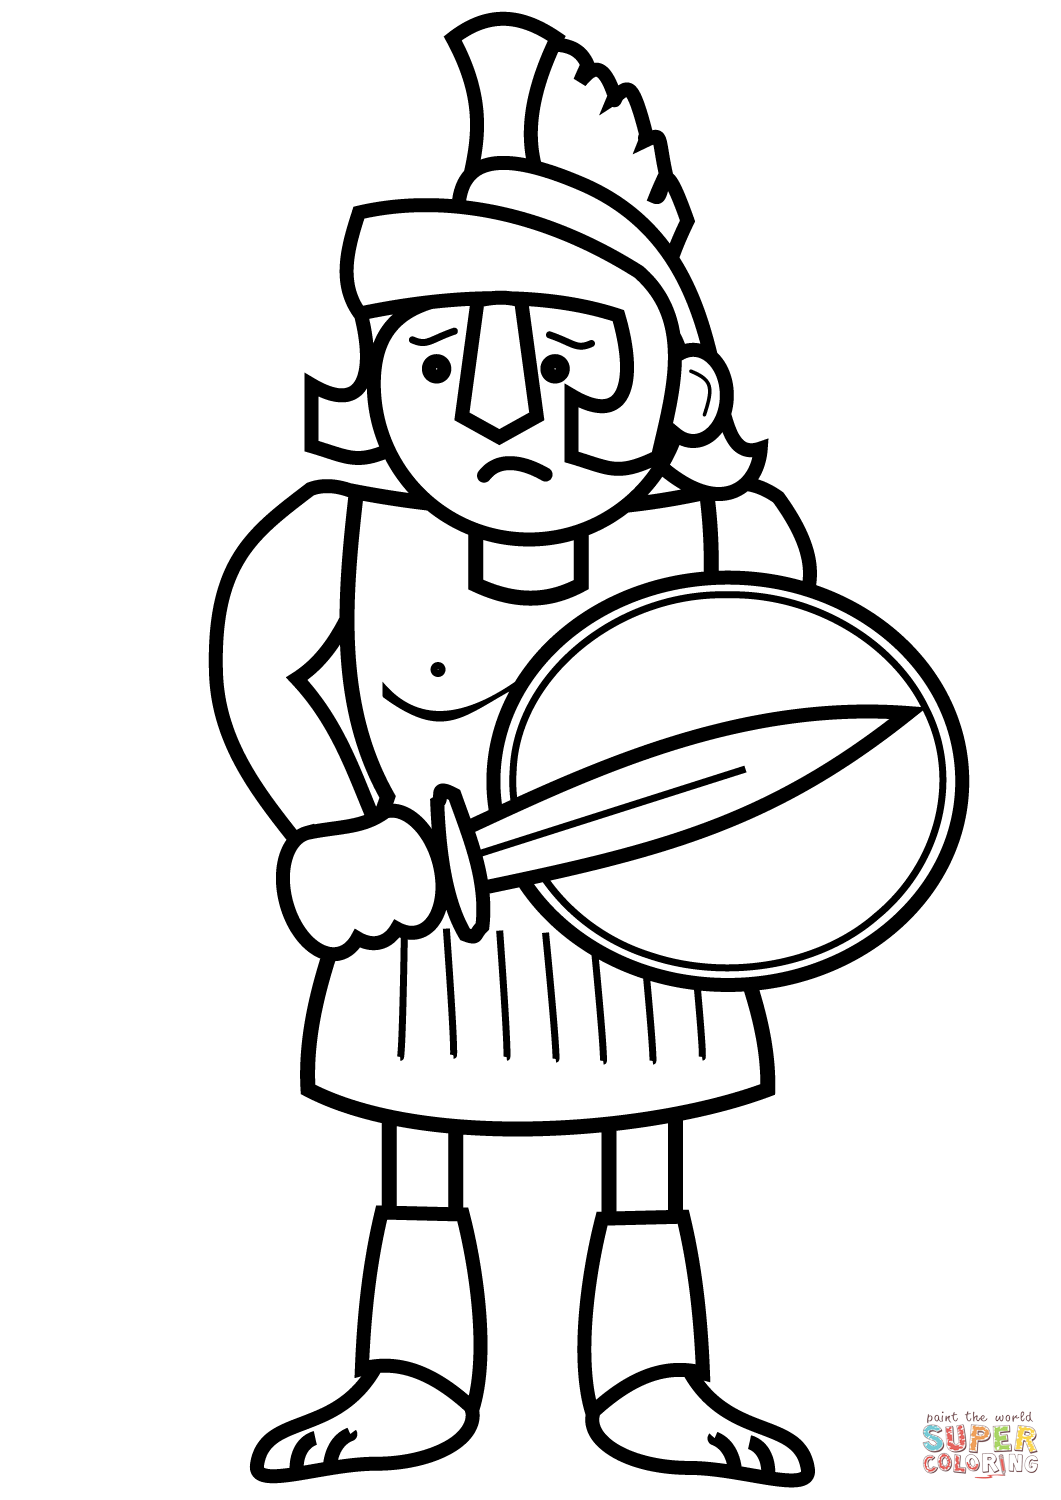 Drawn warrior greek soldier Greek the Click page coloring